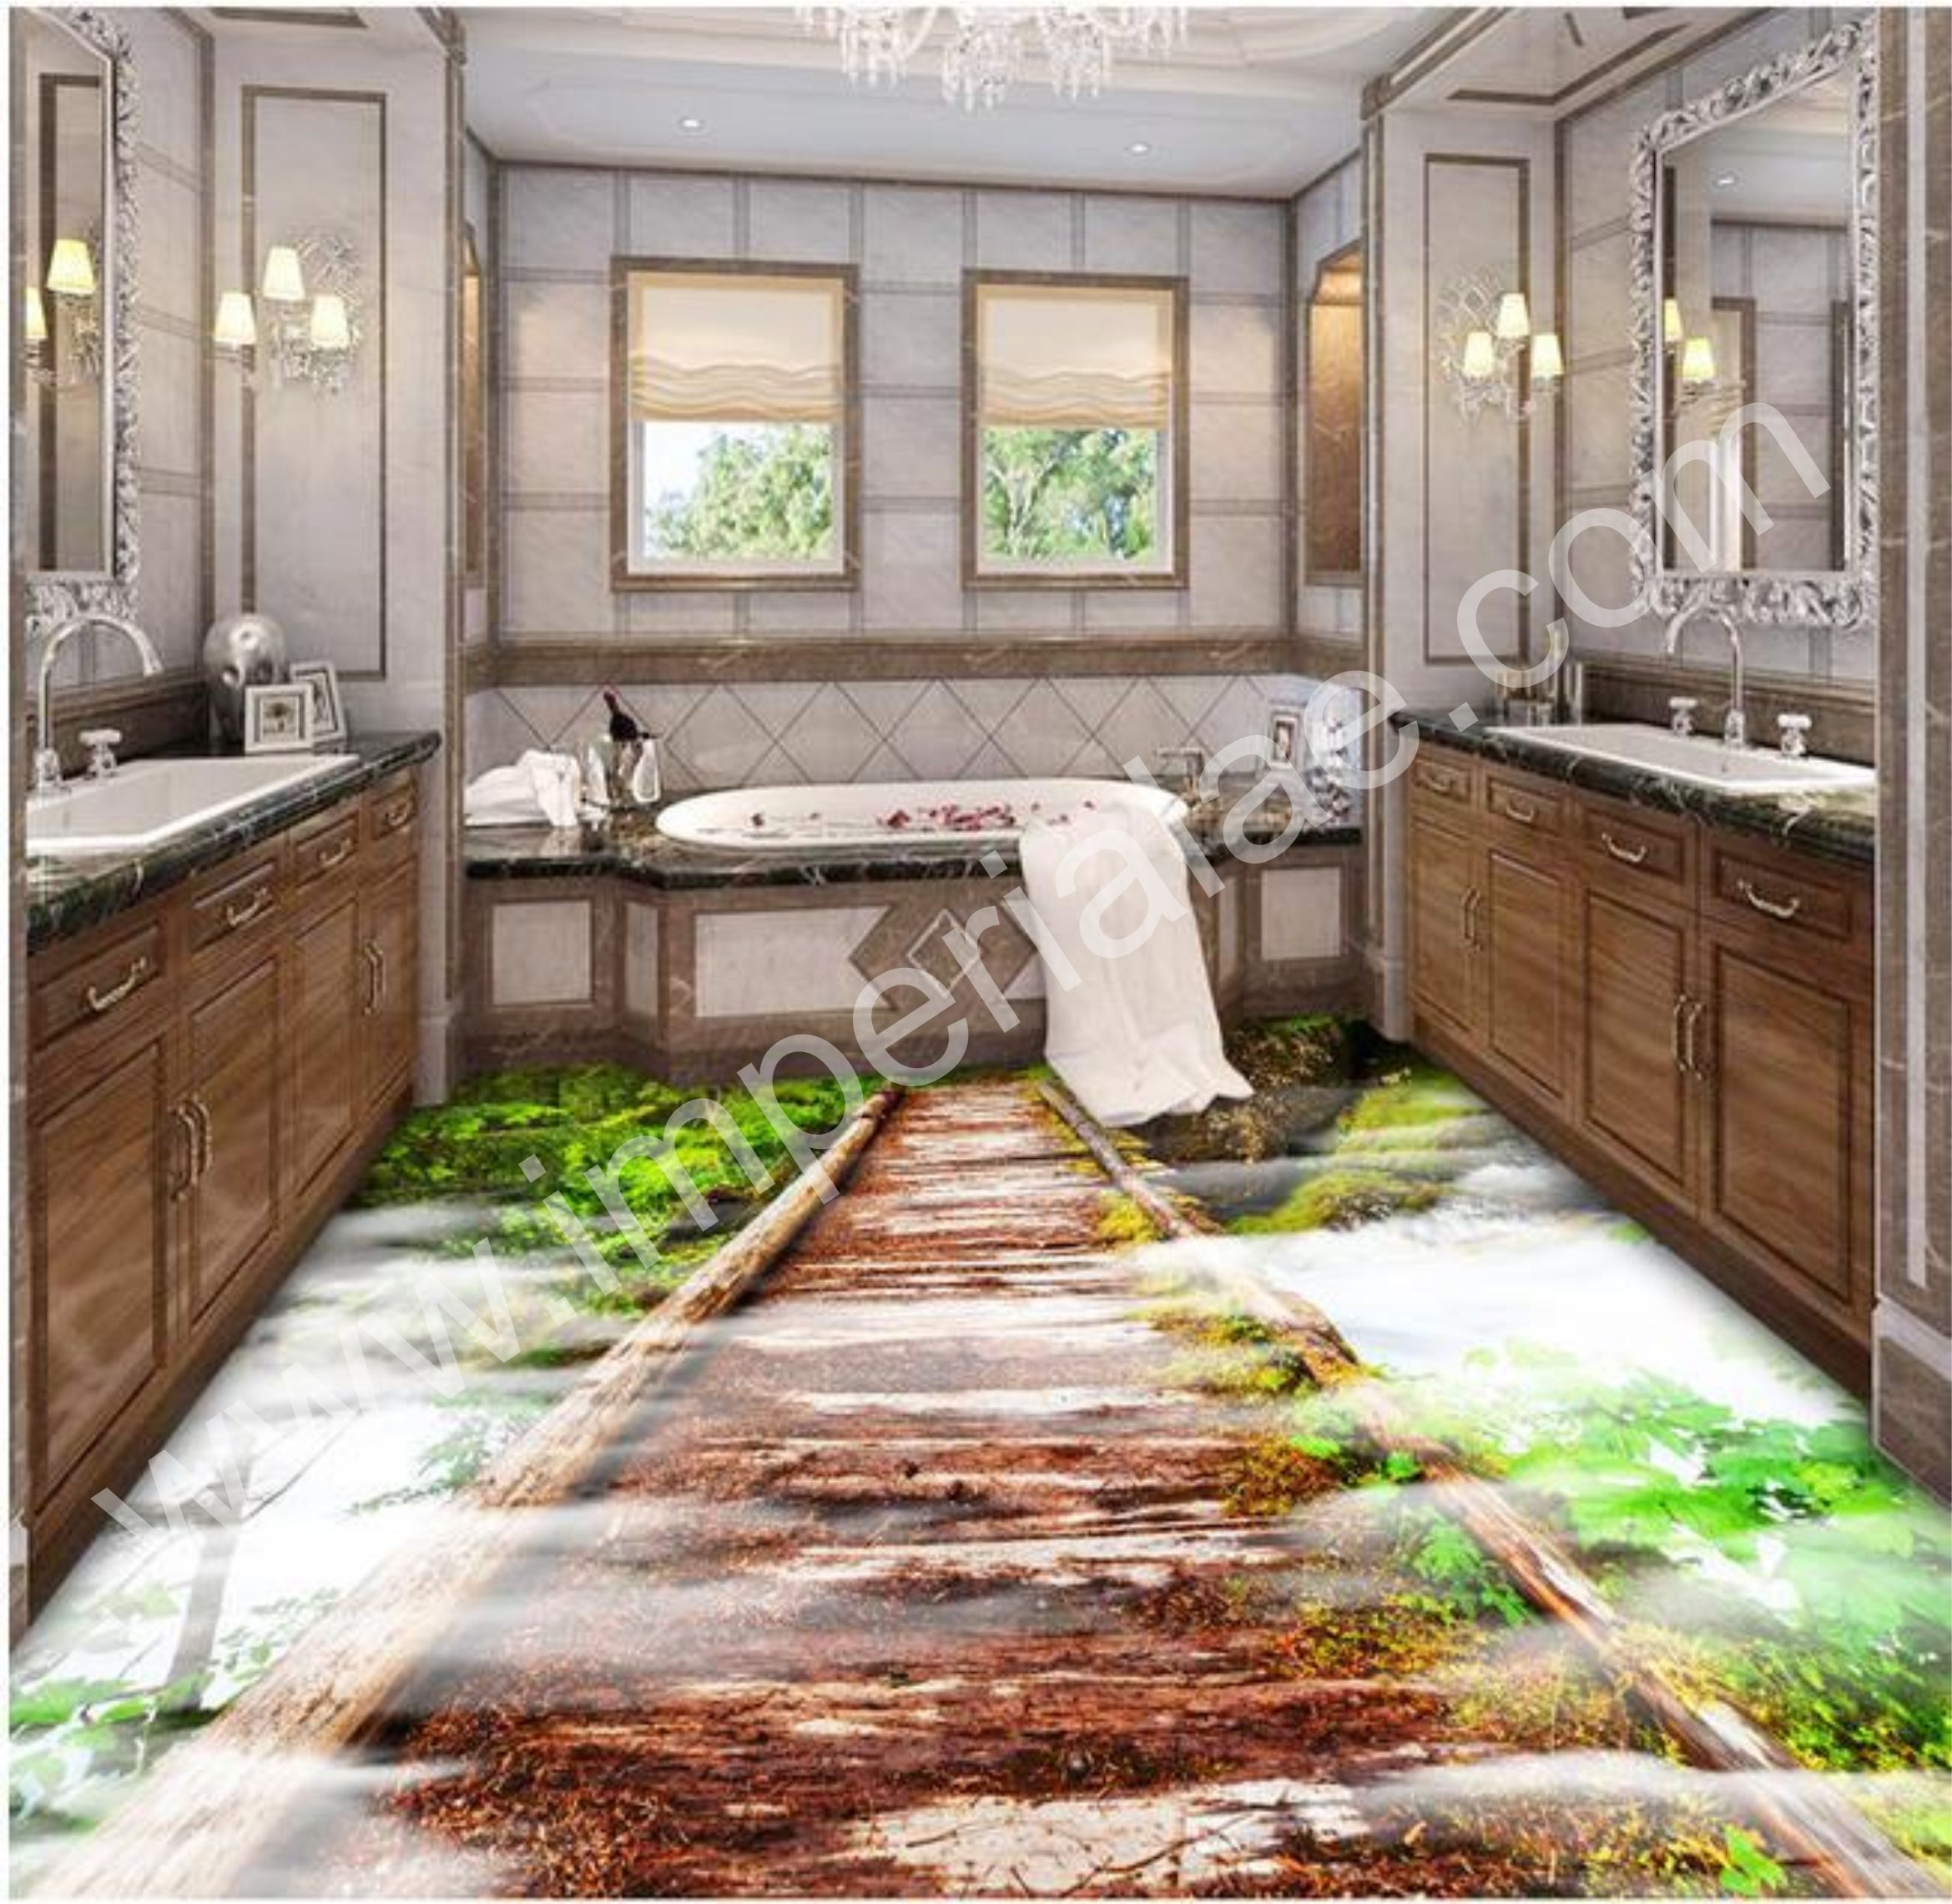 We specialized in We specialized in 3d floors, Epoxy floor